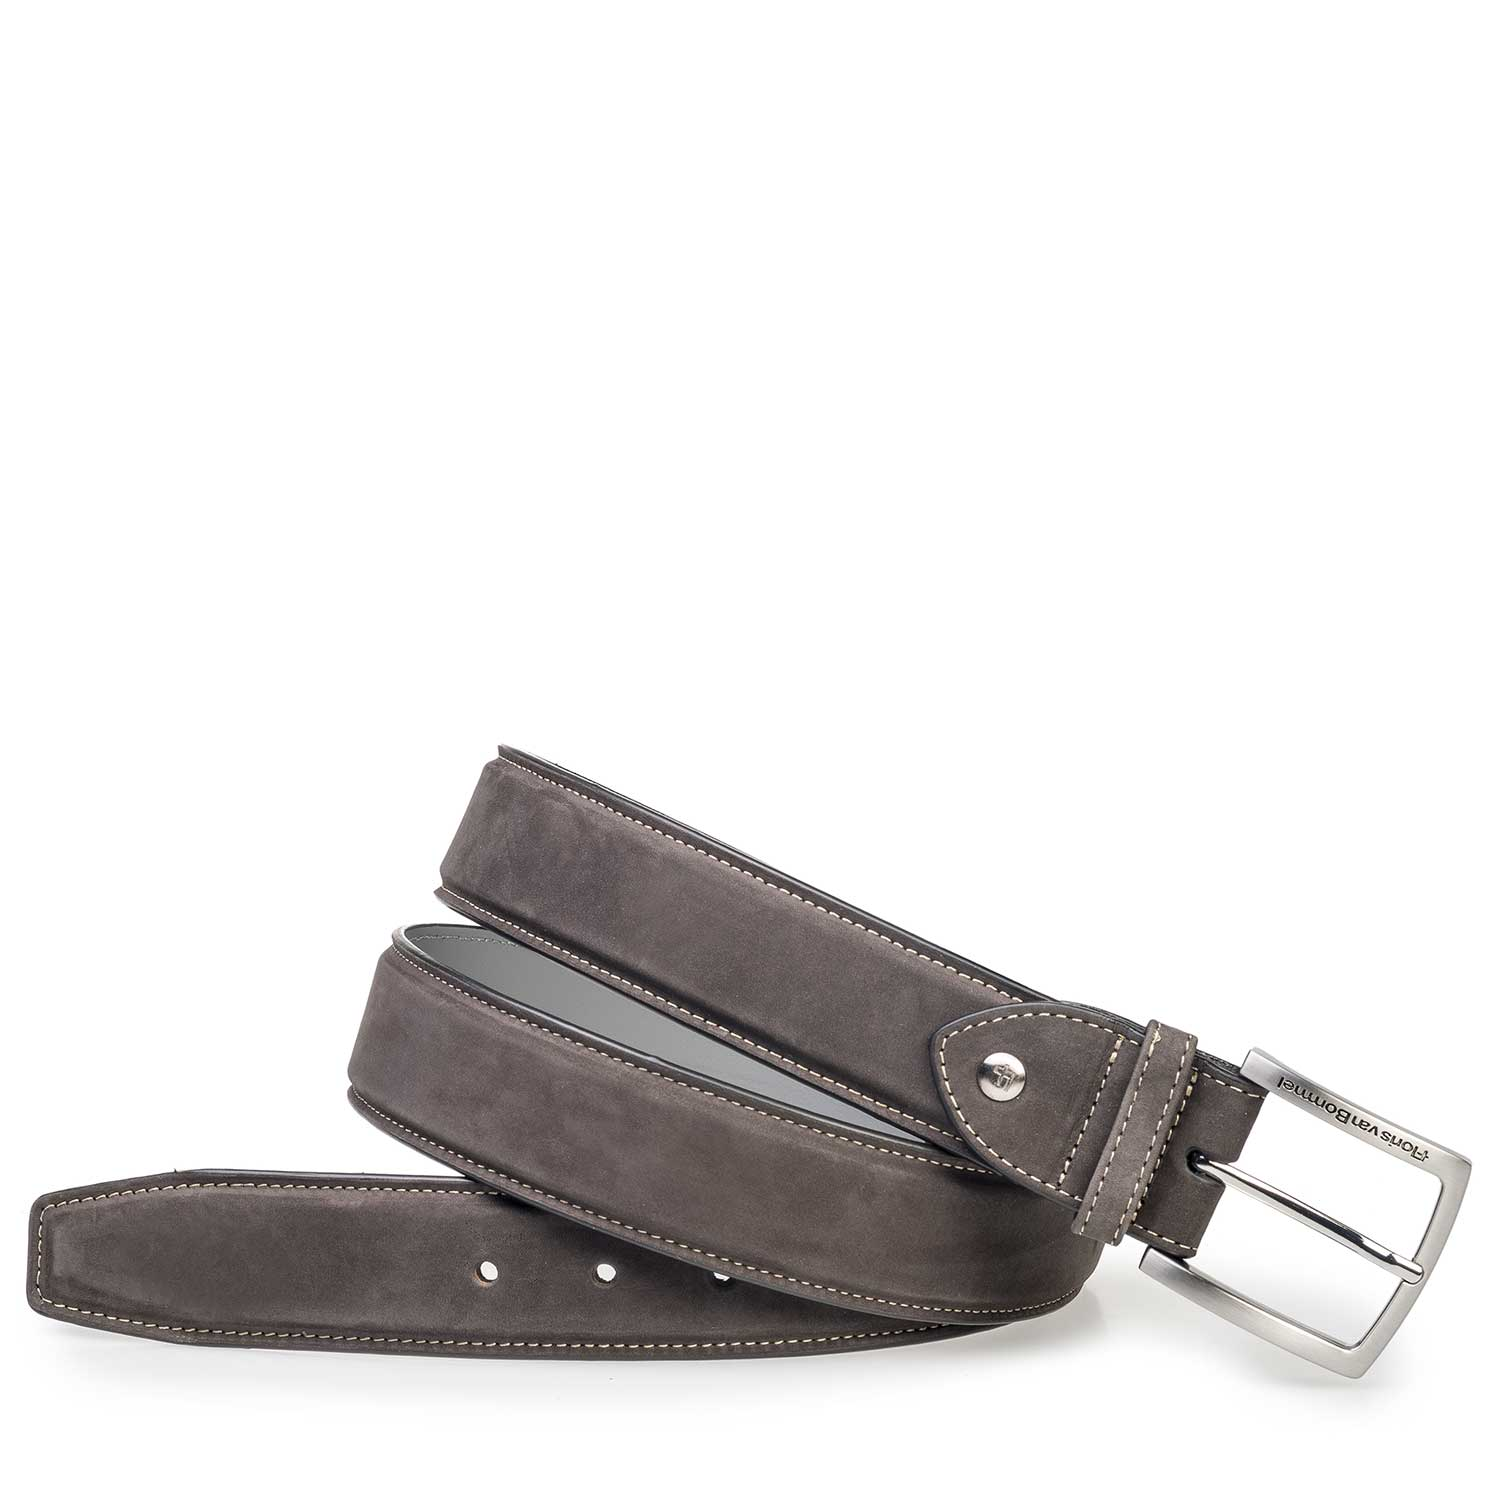 75189/84 - Dark grey nubuck leather belt